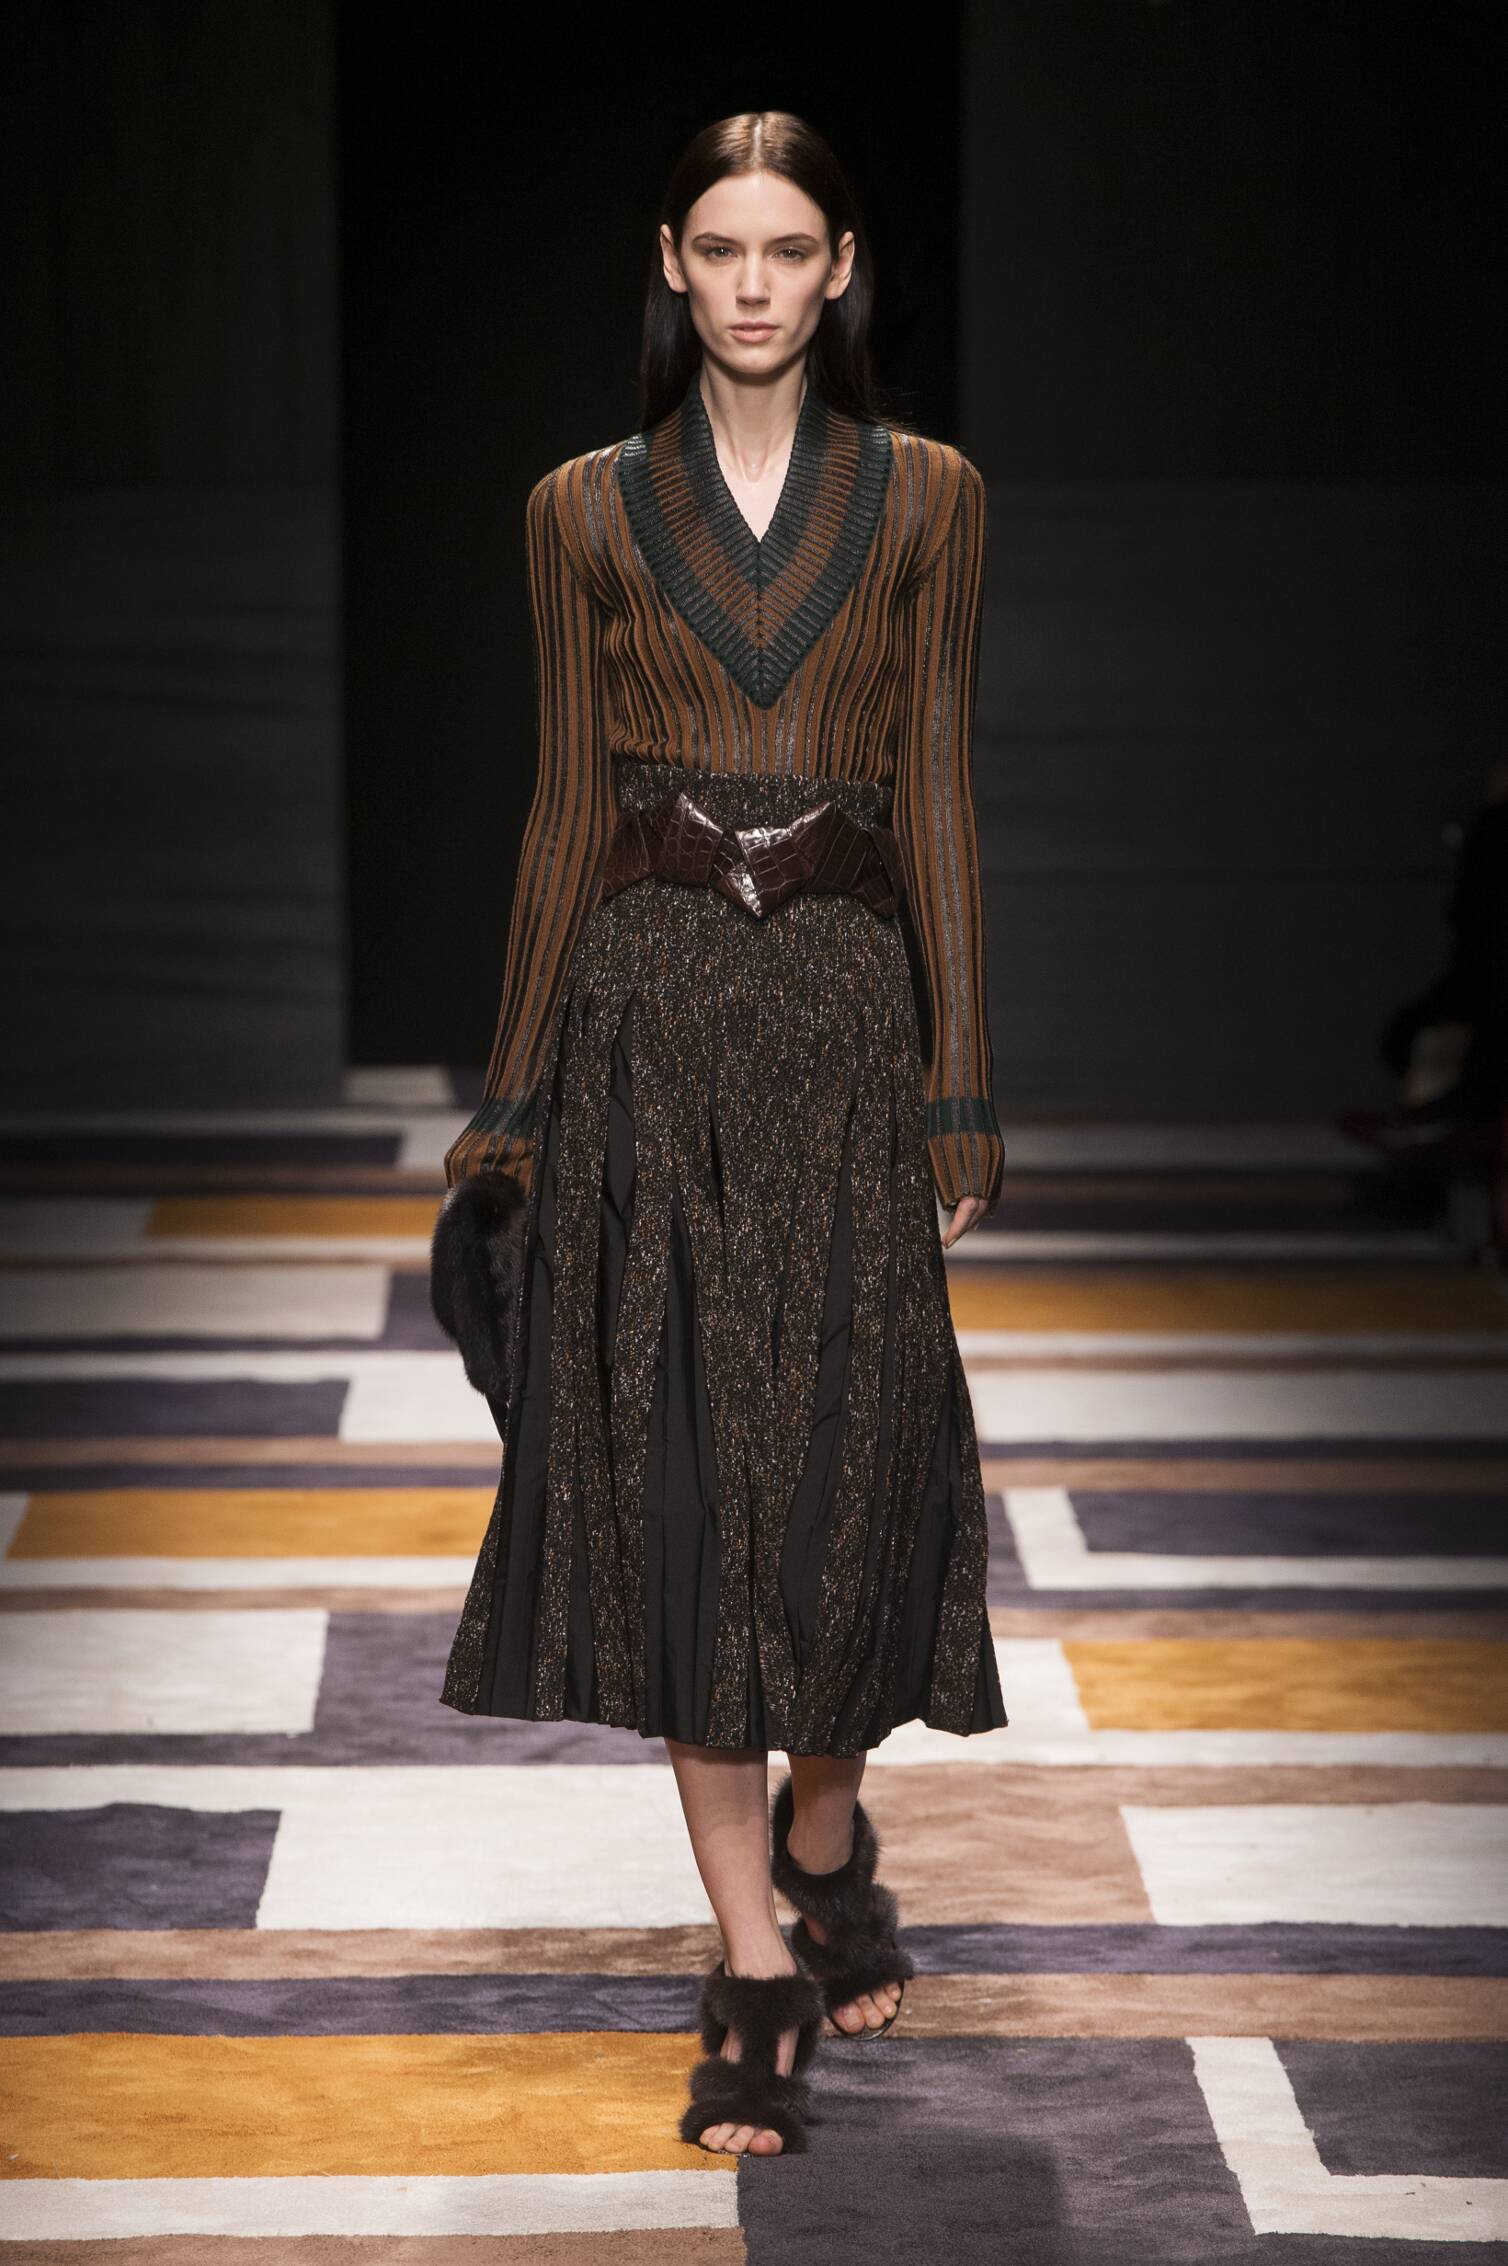 SALVATORE FERRAGAMO FALL WINTER 2015 16 WOMENS COLLECTION